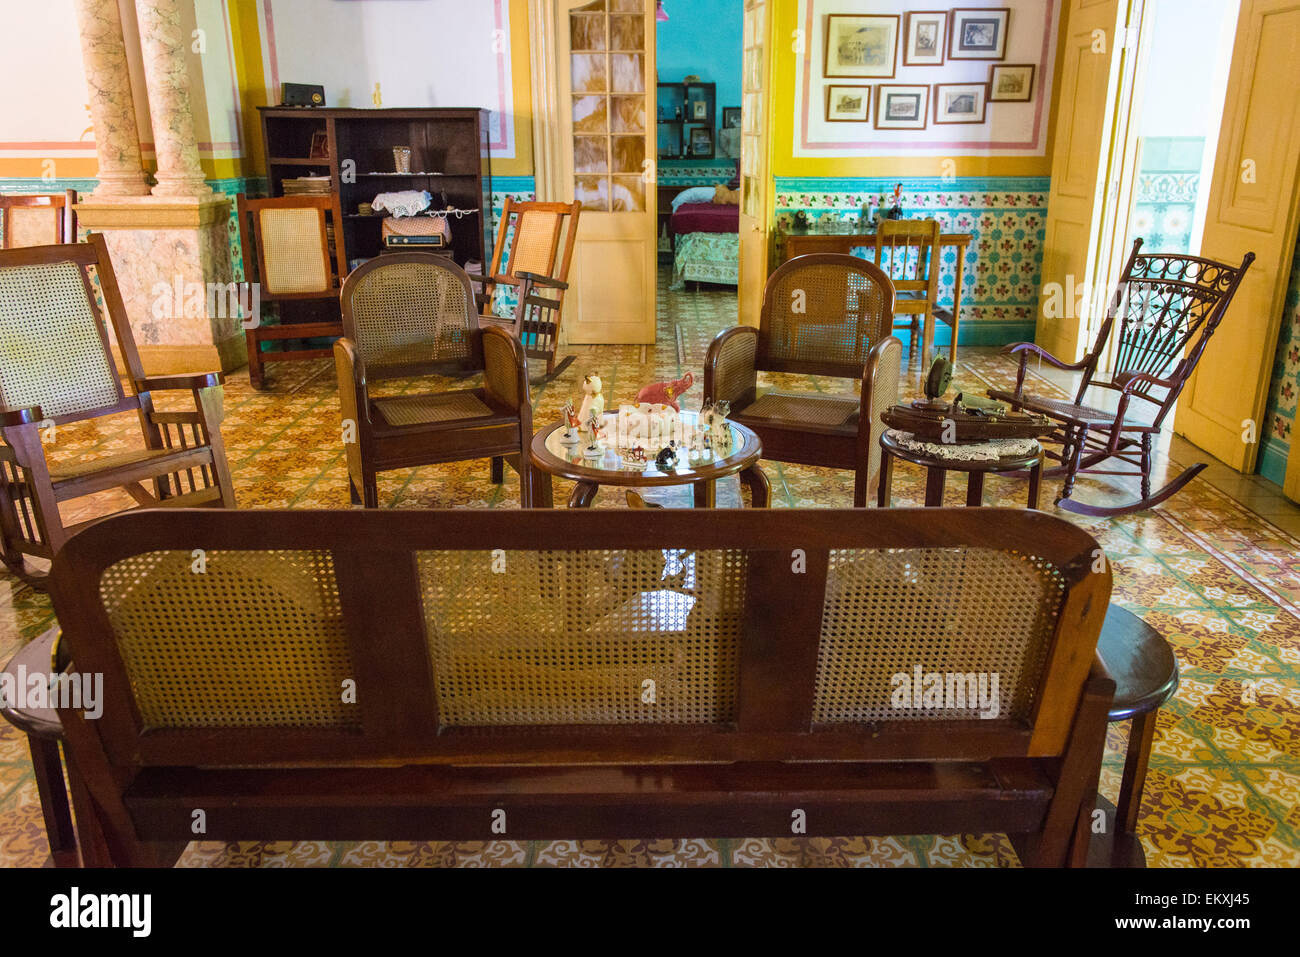 Cuba Trinidad typical Cuban home old antique furniture ornate walls & tiles  lamp shades rocking chairs table couch sofa - Cuba Trinidad Typical Cuban Home Old Antique Furniture Ornate Walls